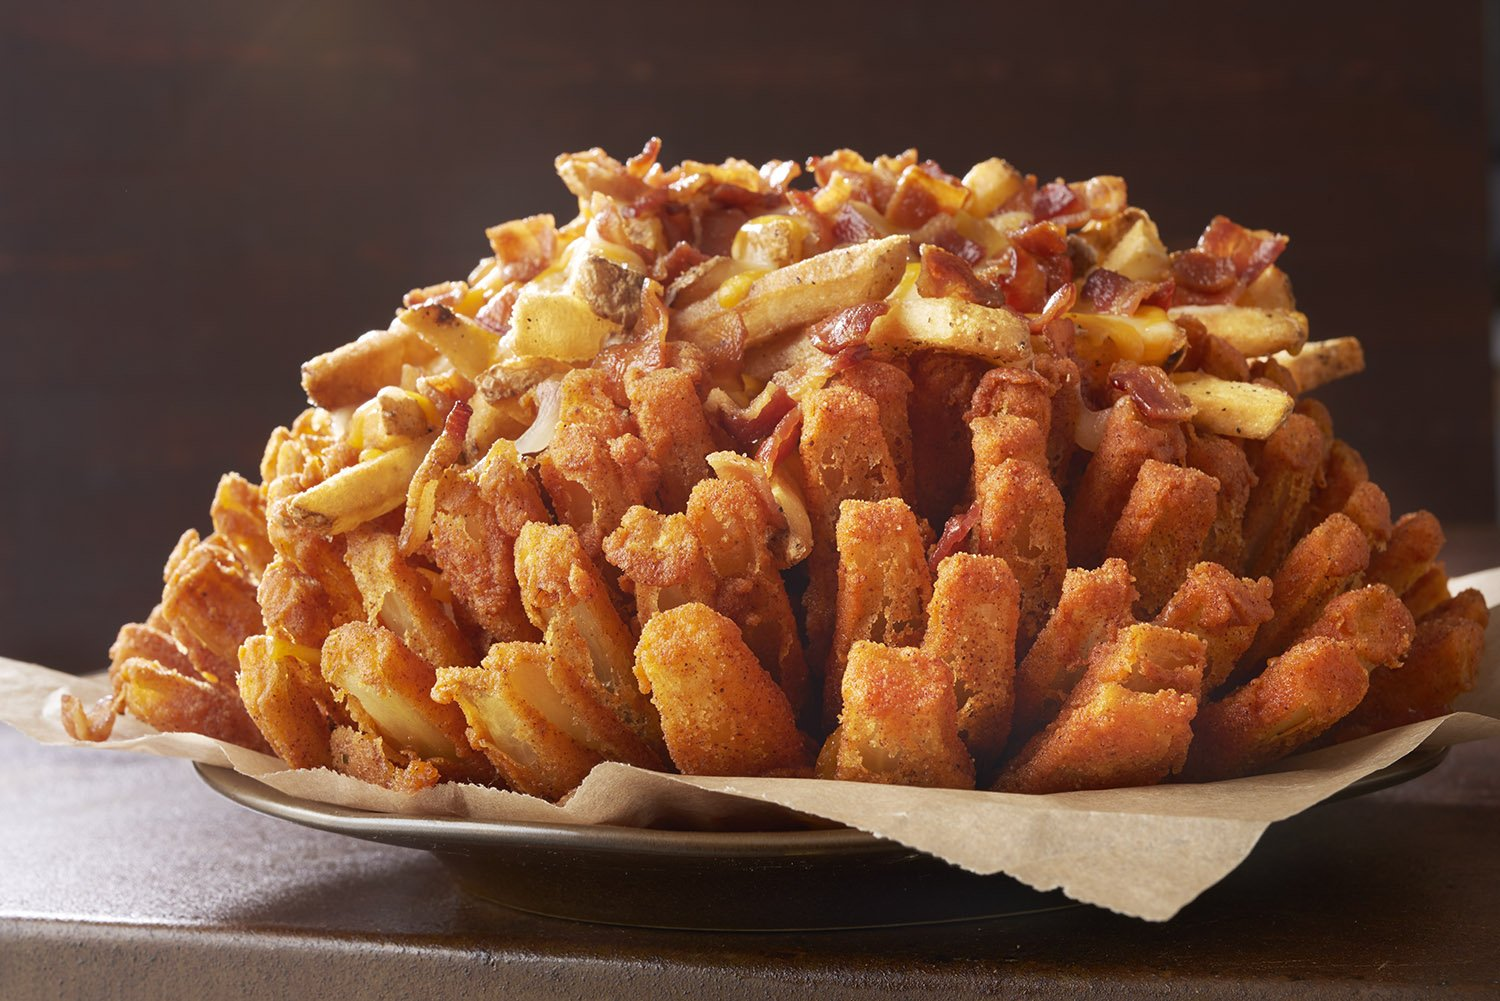 Outback Bloomin' onion fries